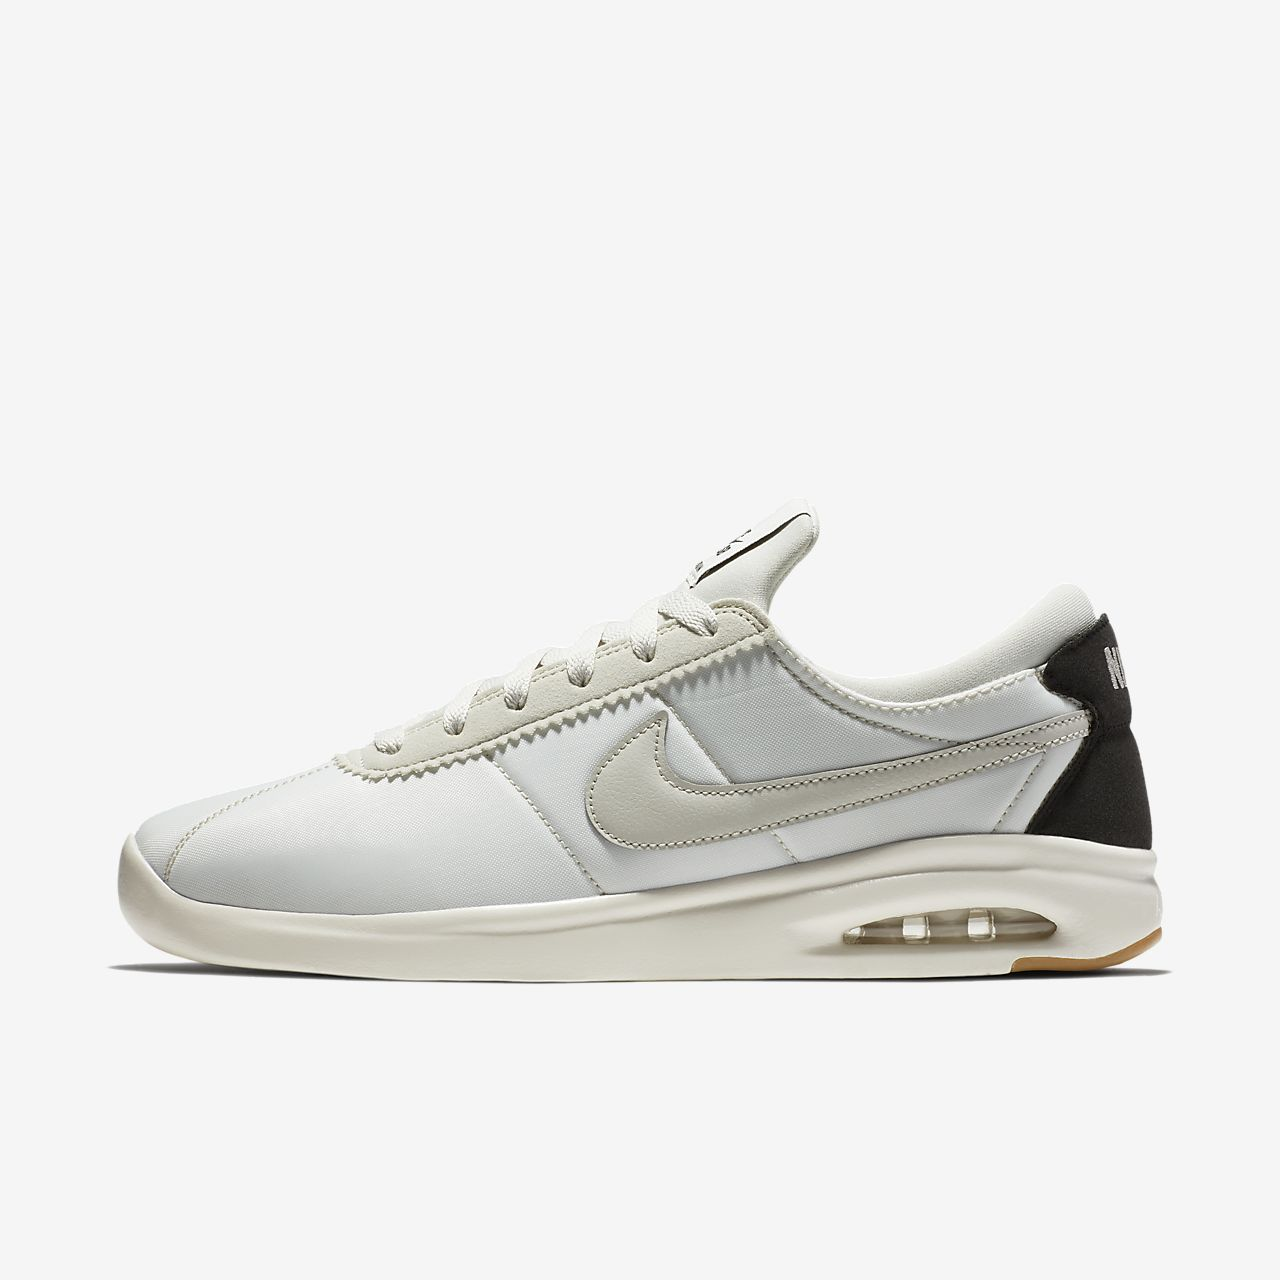 nike sb zoom bruin chaussures pour vente